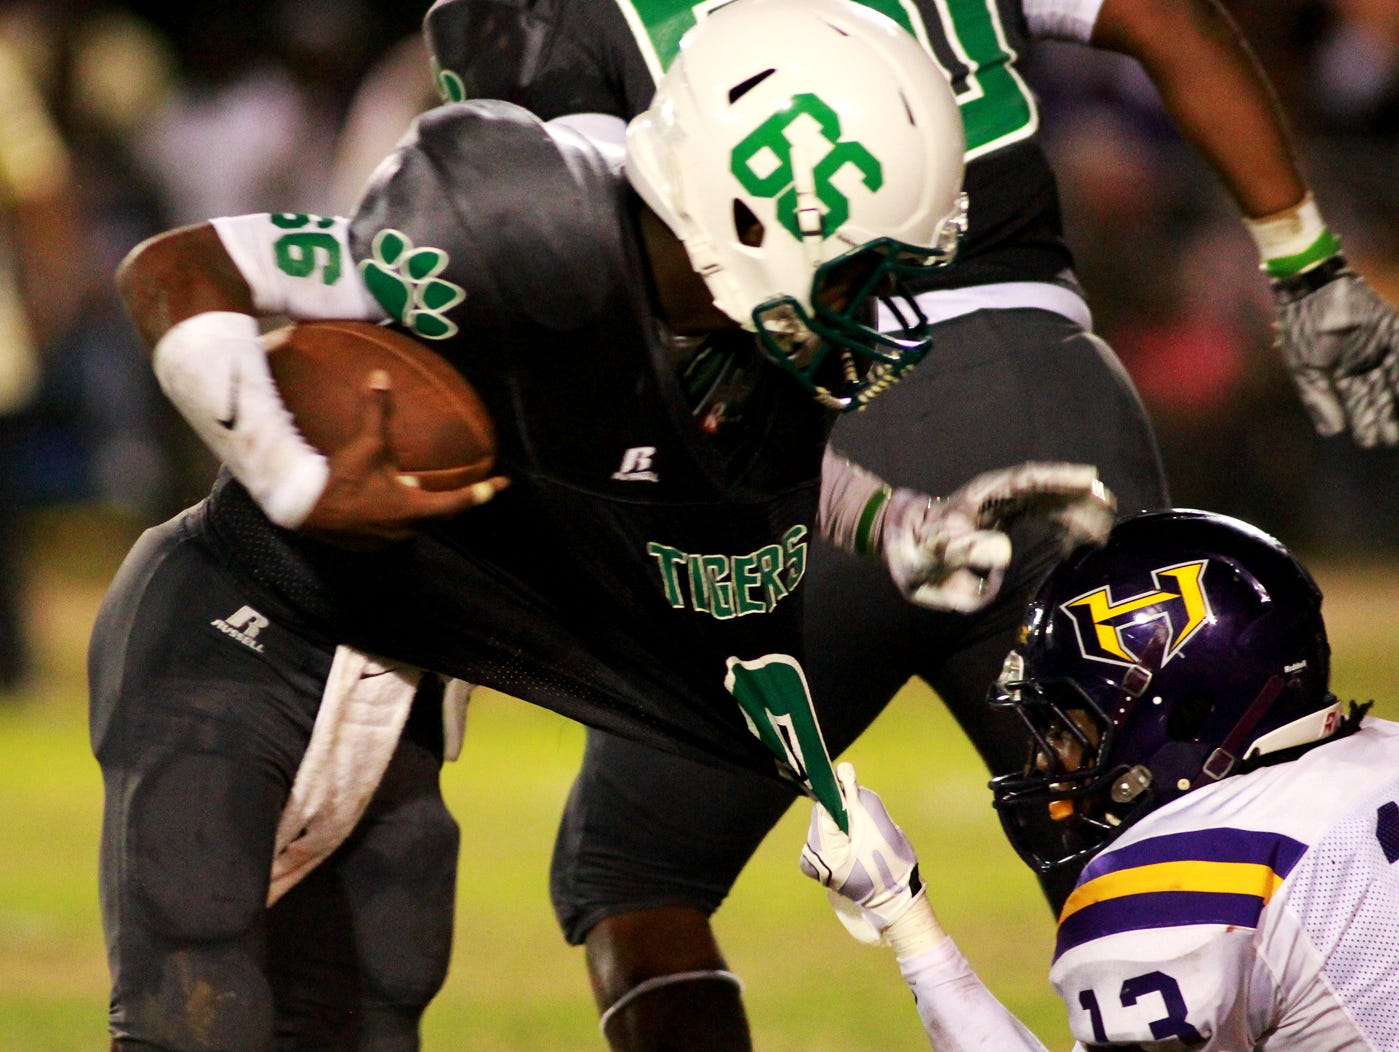 Collins quarterback Detric Hawthorn is pulled down by a Hattiesburg defender during their game earlier this season.